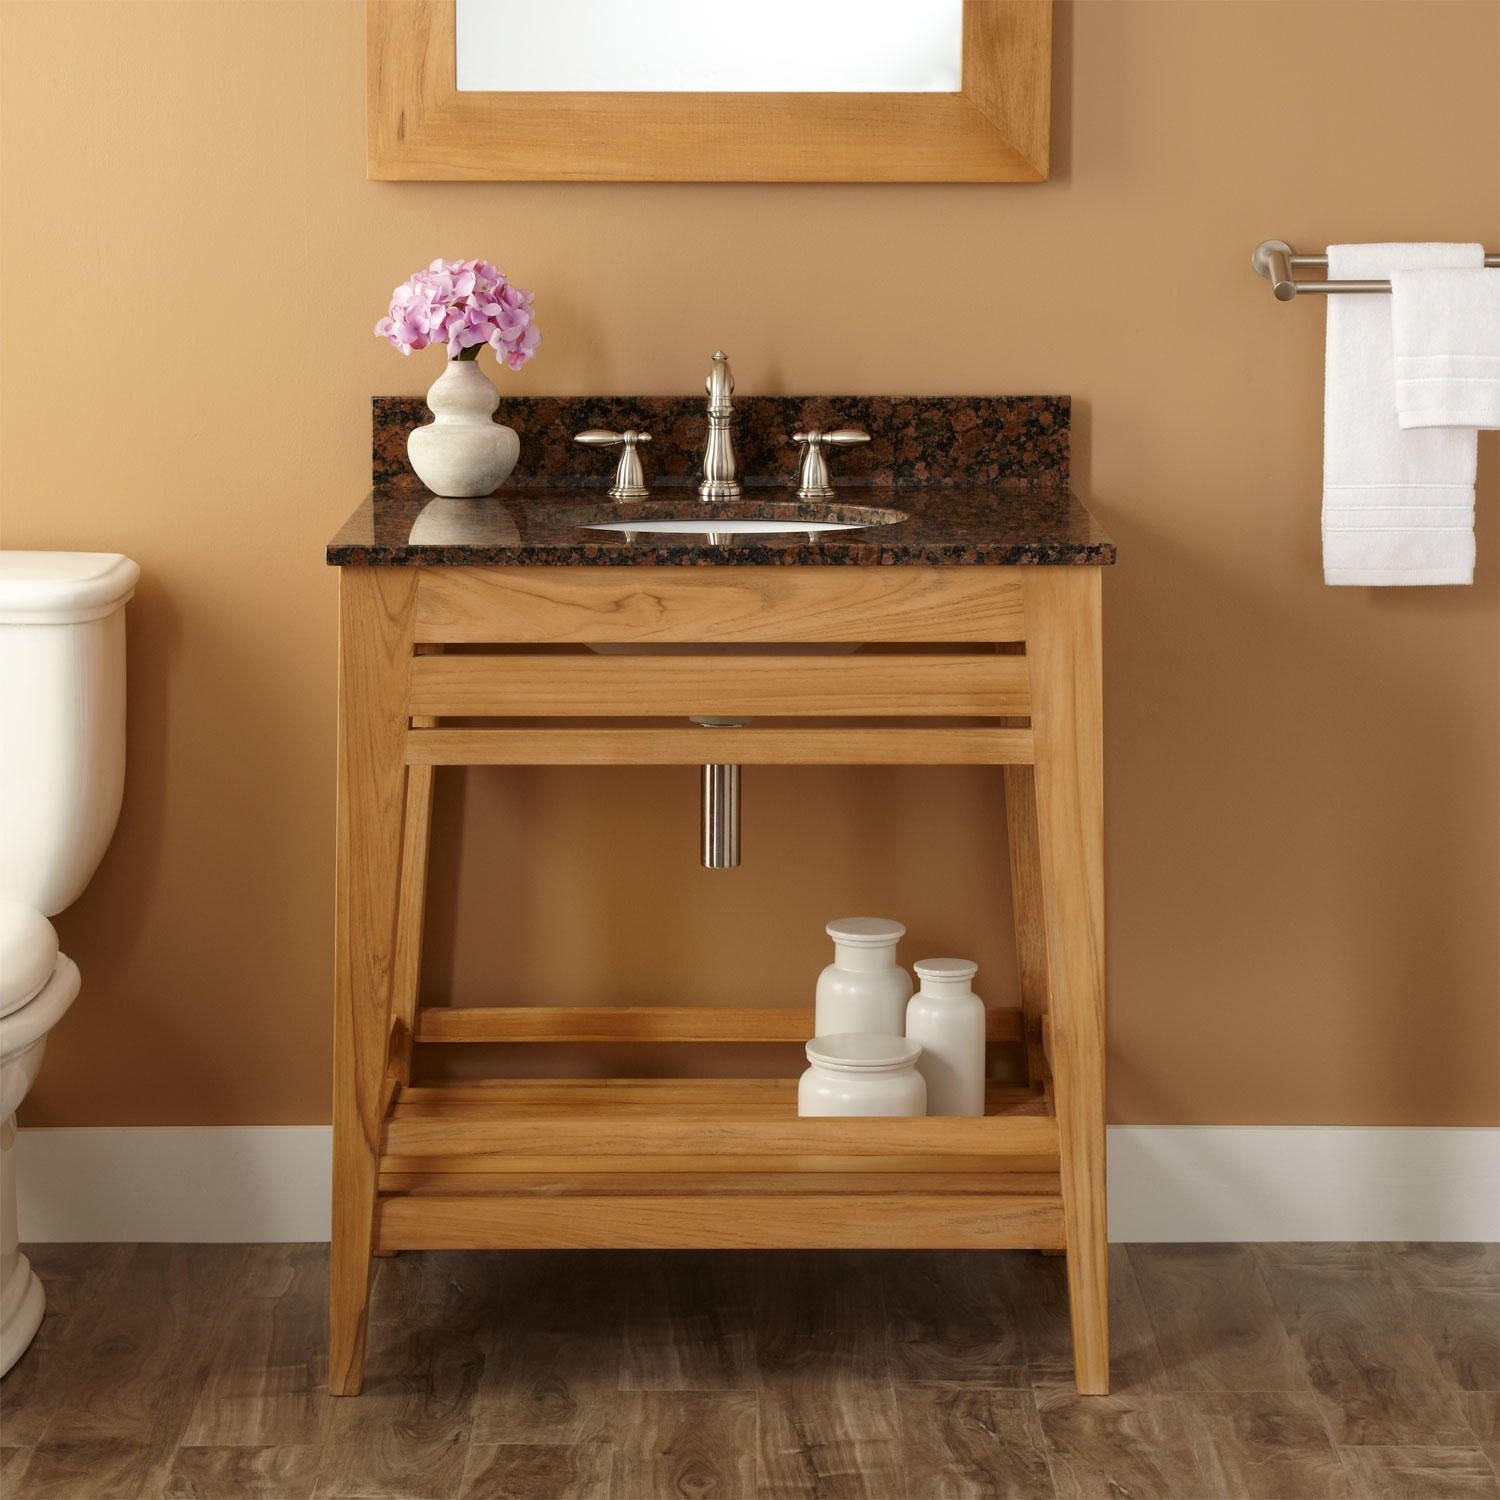 "30"" Aurelia Teak Console Vanity for Undermount Sink - Natural Teak"